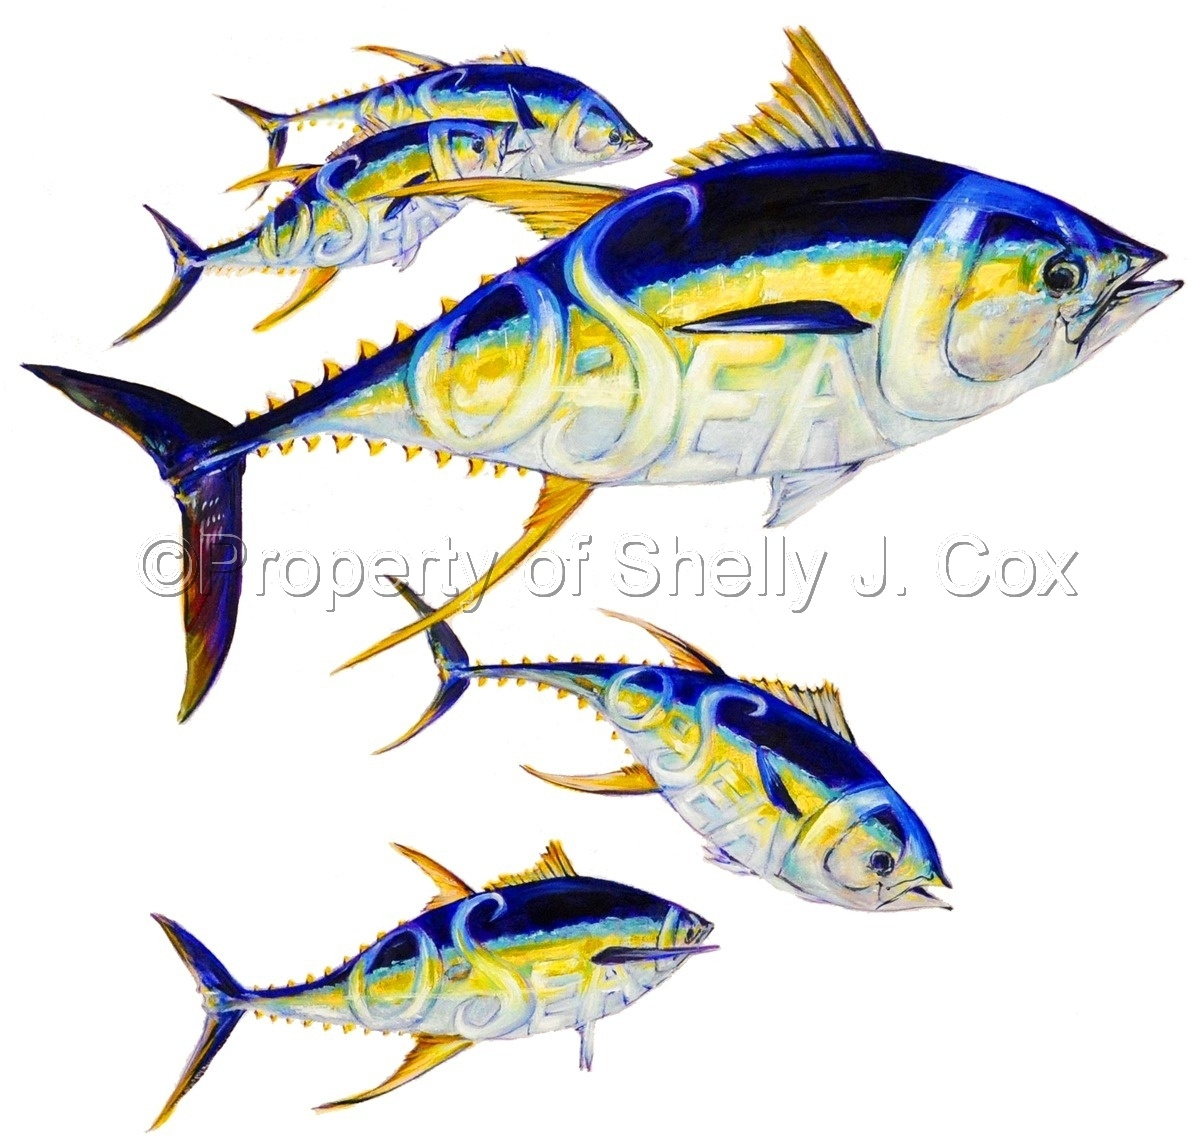 Yellowfin Tuna with O-SEA-D logo painted inside the fish body by Hot Girl Graphics LLC artist Shelly J. Cox. (large view)